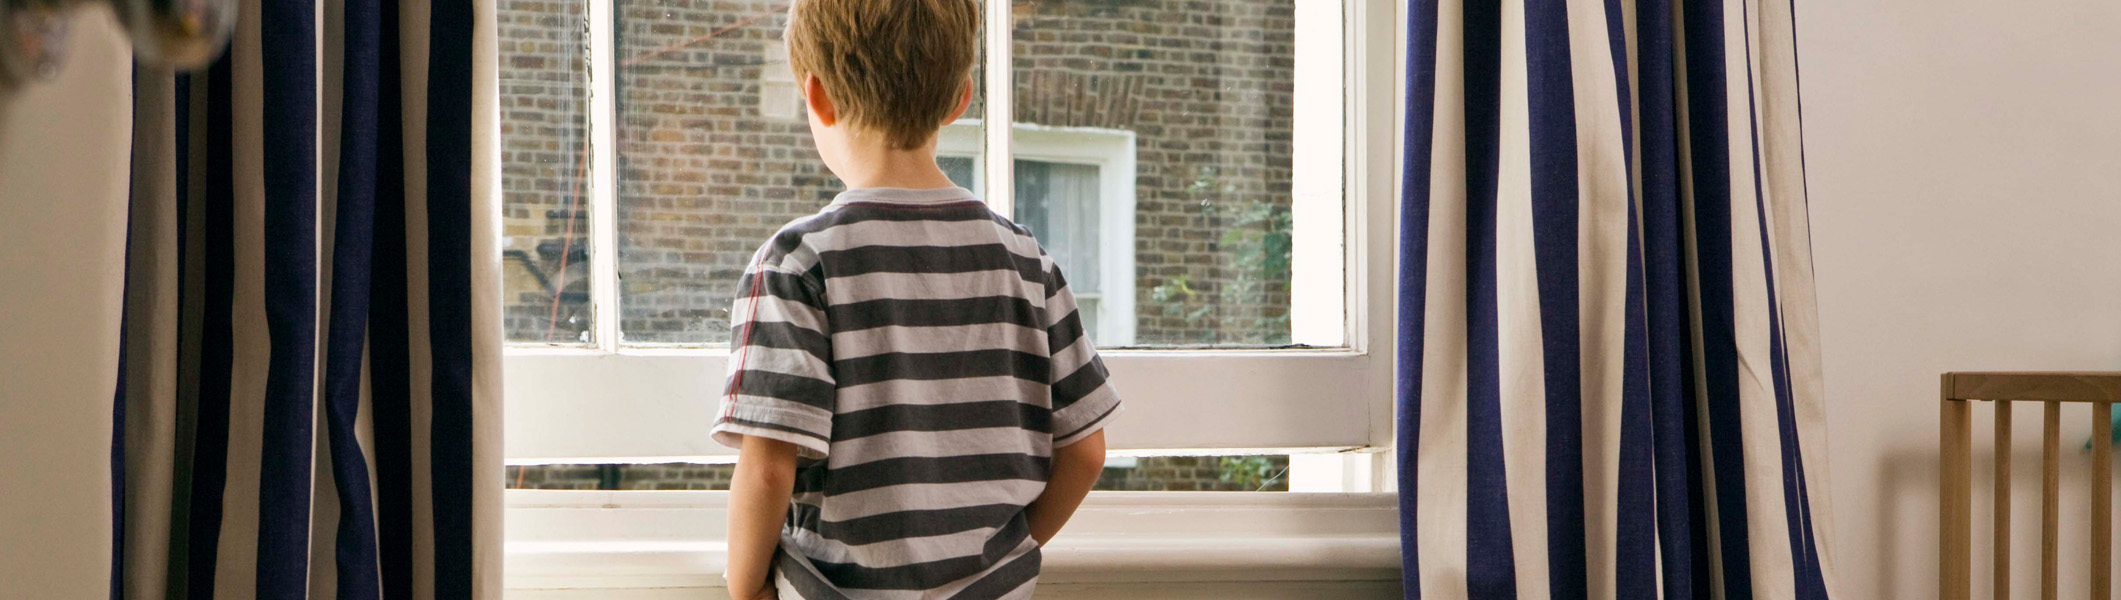 Young child looking out of window